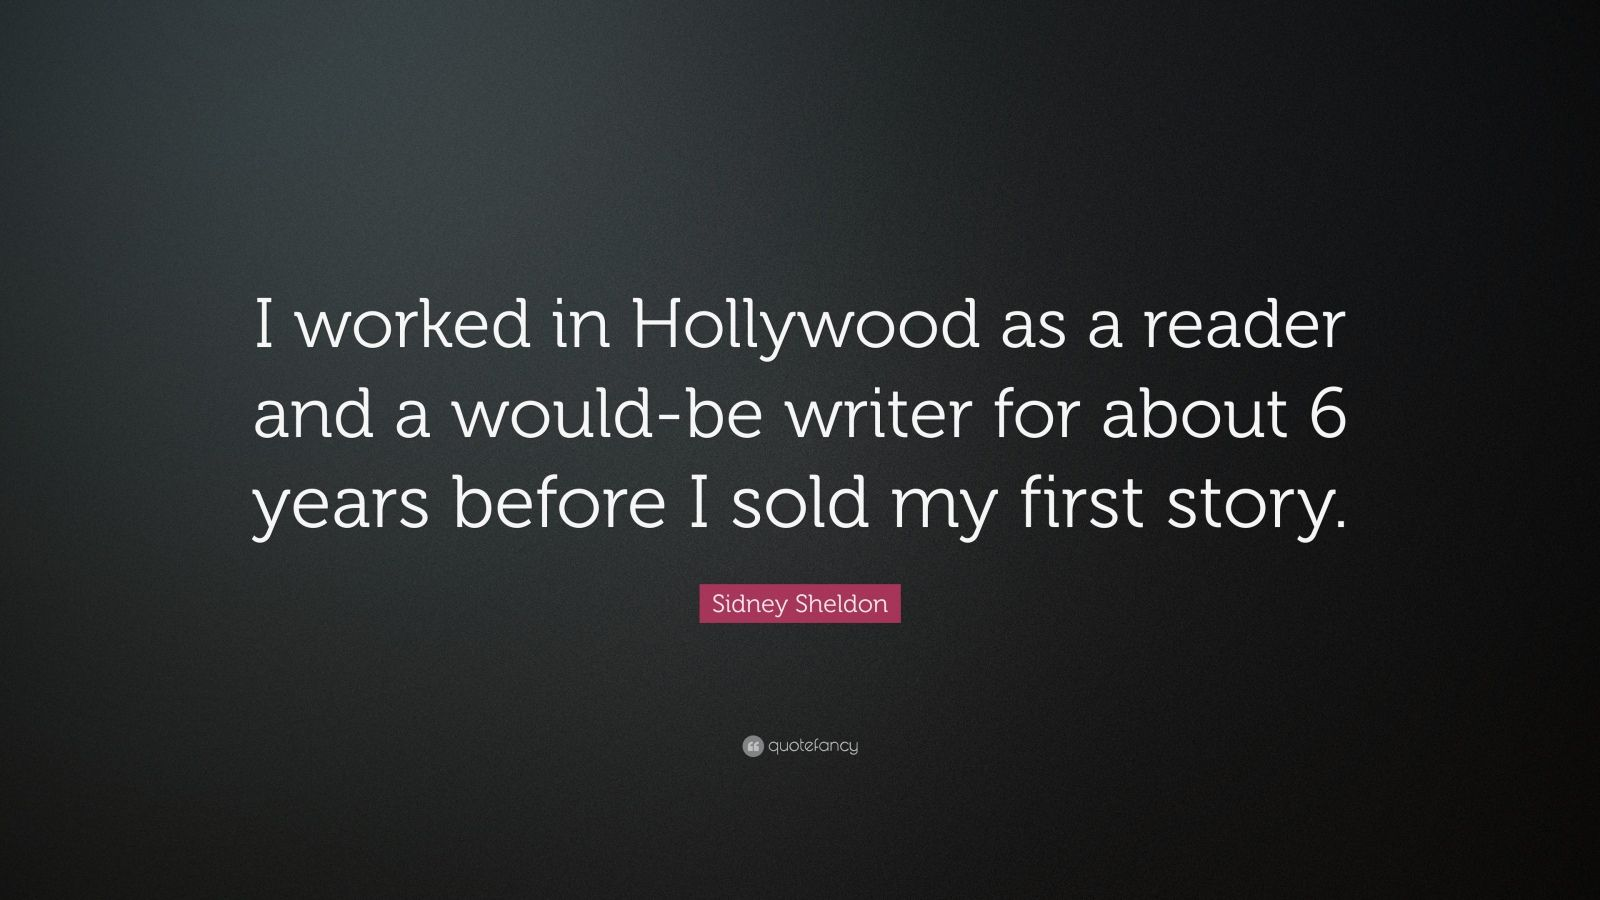 """Sidney Sheldon Quote: """"I worked in Hollywood as a reader and a would-be writer for about 6 years before I sold my first story."""""""